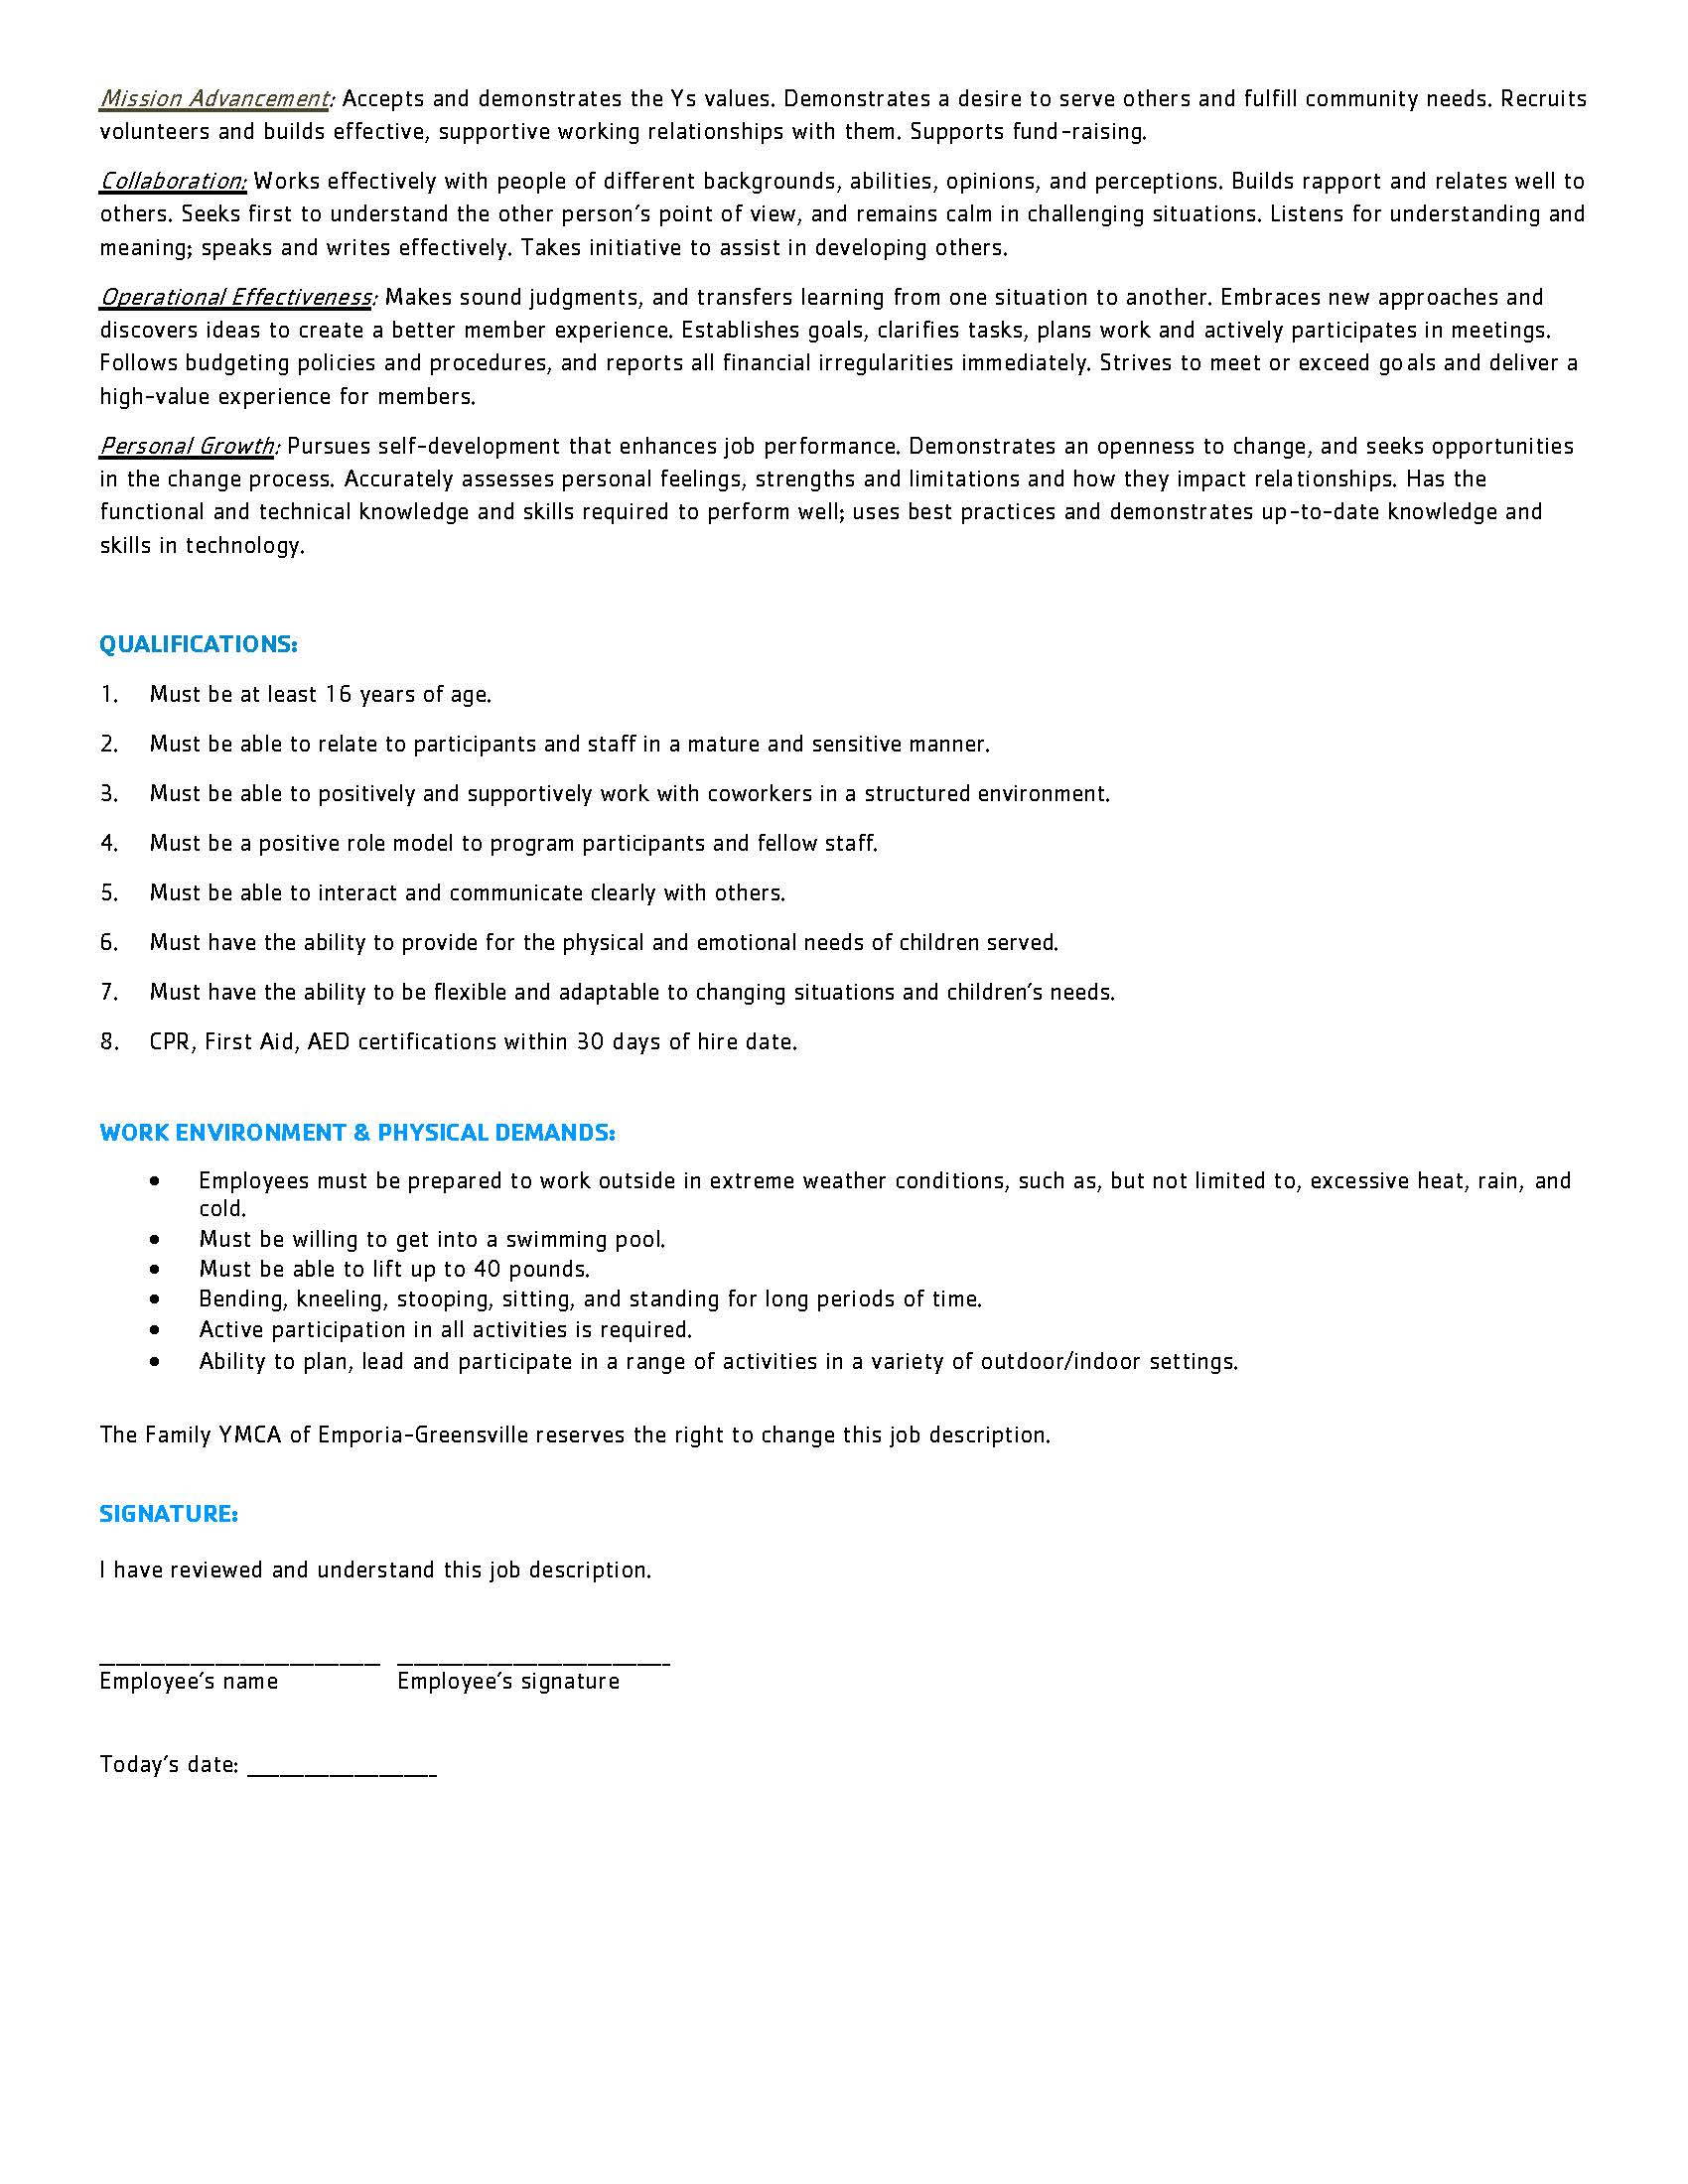 School Age Counselor Job Description updated for 2018 2019 school year Page 2